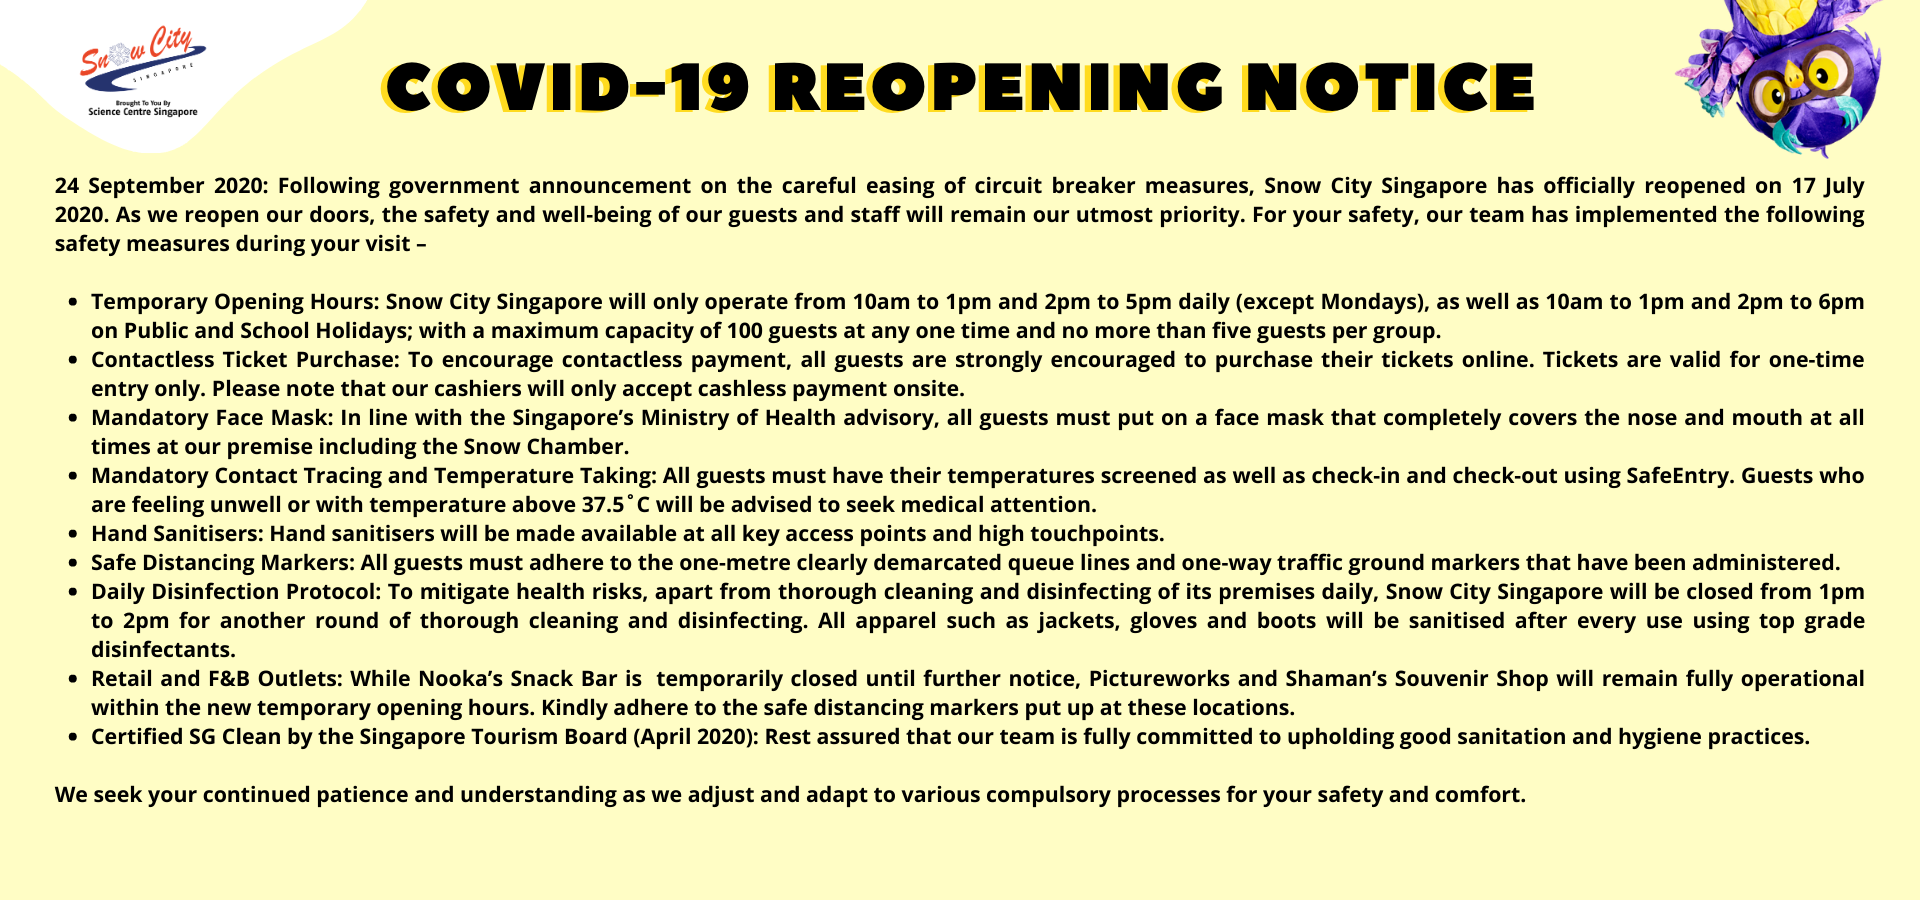 2.Reopening-Statement-Web-Banner-1920W-x-900H-24092020